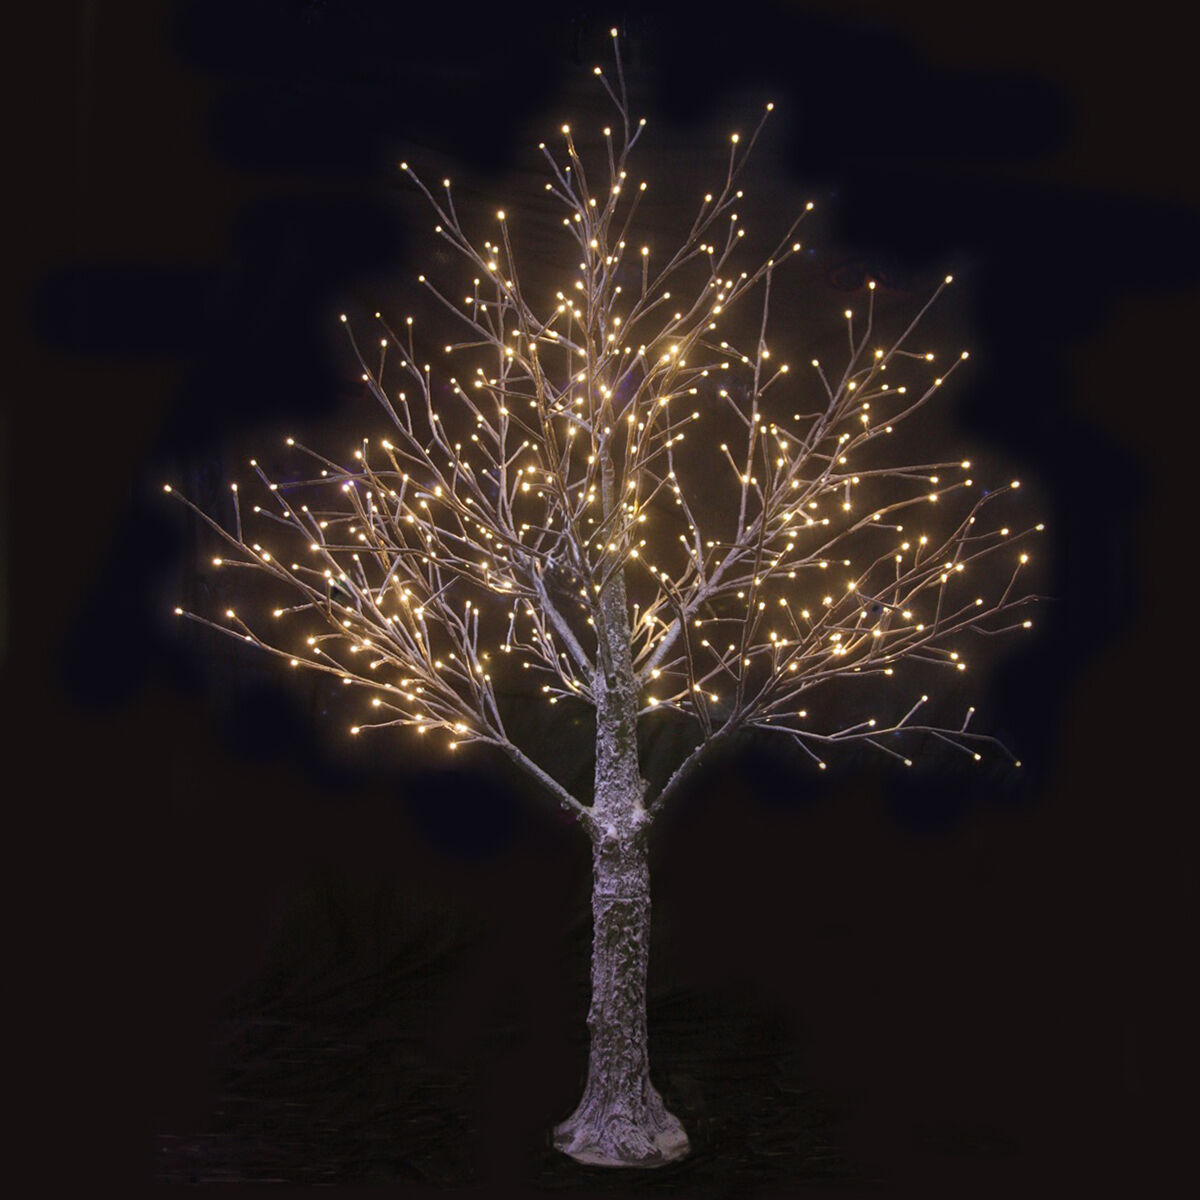 Brown Snowy Twig Tree Warm White LED Lights Christmas Indoor Outdoor Decoration u2022 u00a399.99 ...